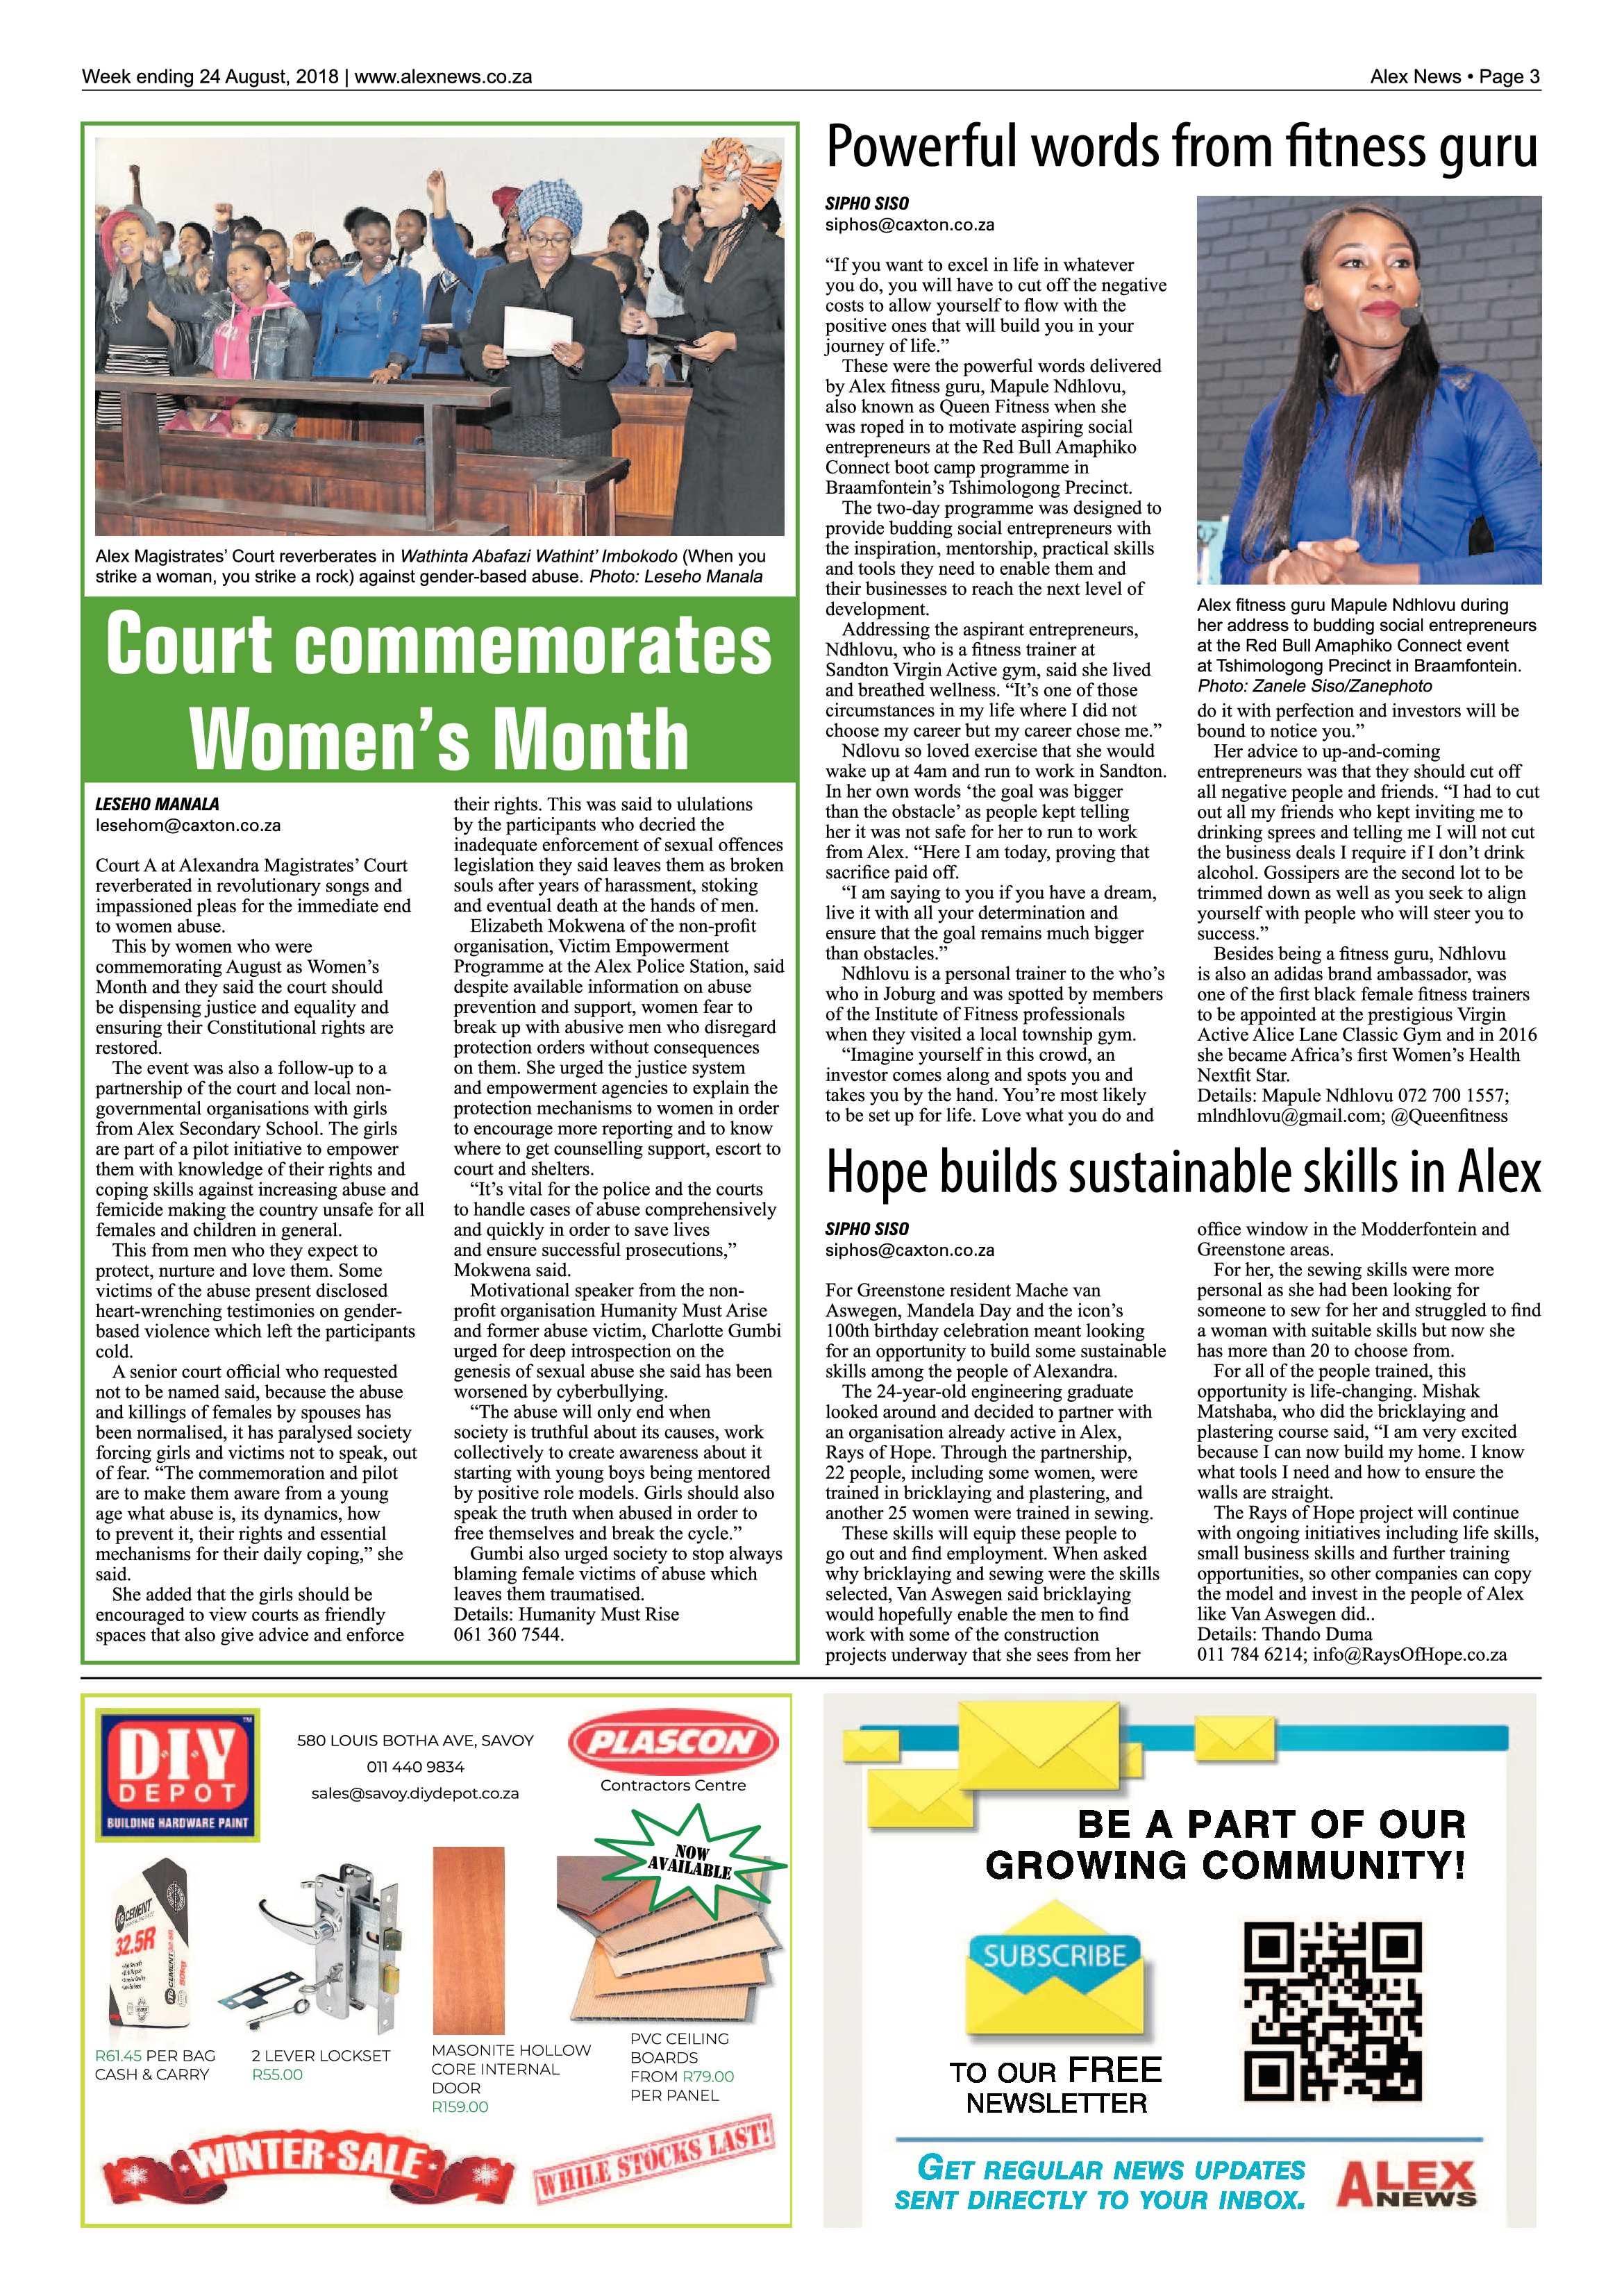 alex-24-august-2018-epapers-page-3